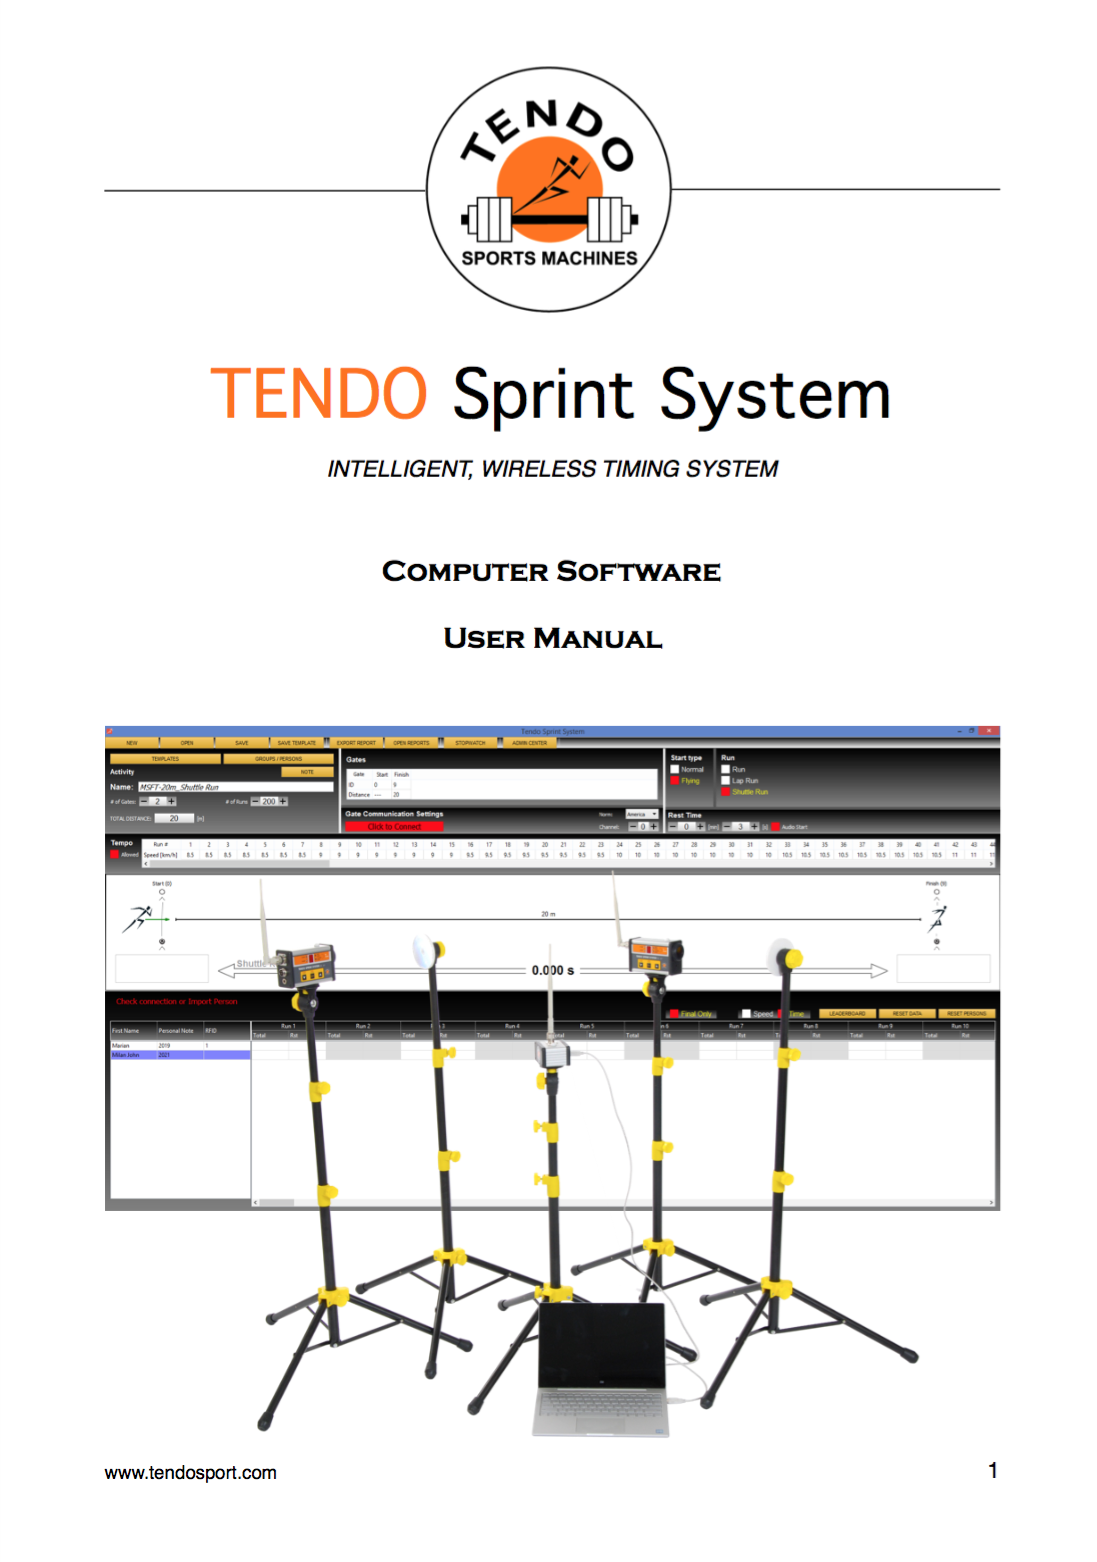 Tendo Sprint System, the timing system software manual cover